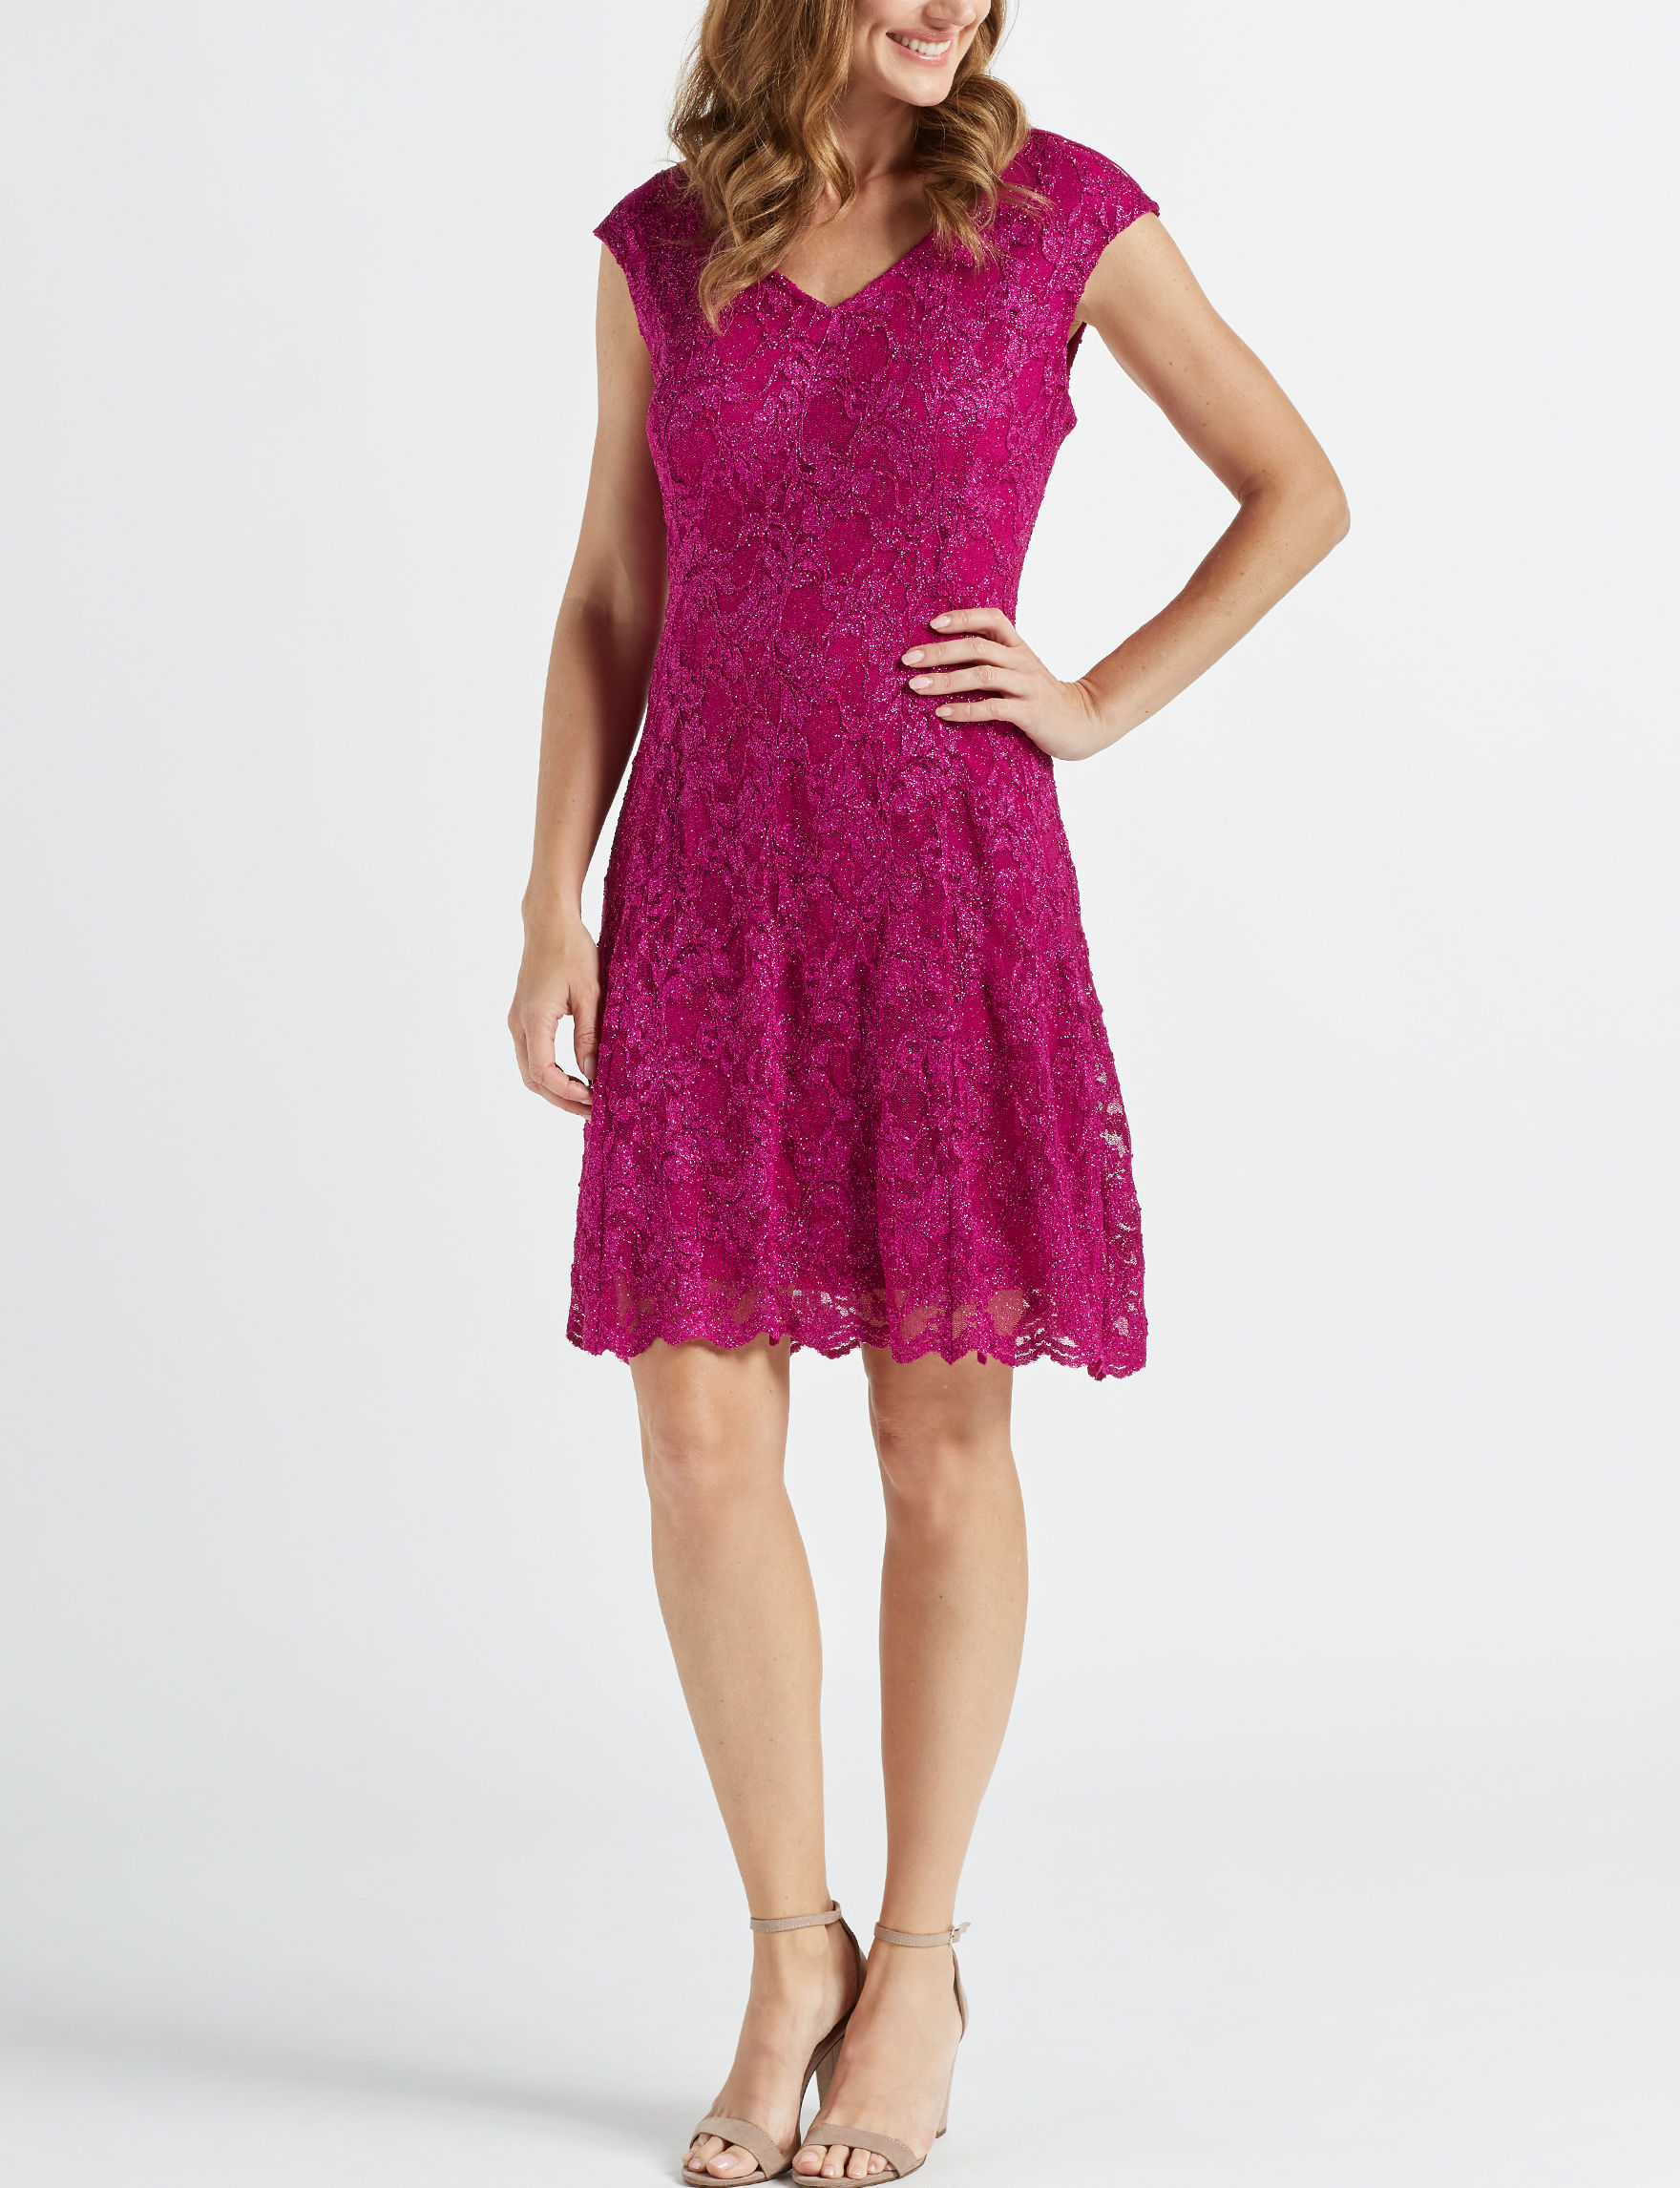 Ronni Nicole Magenta Cocktail & Party Evening & Formal A-line Dresses